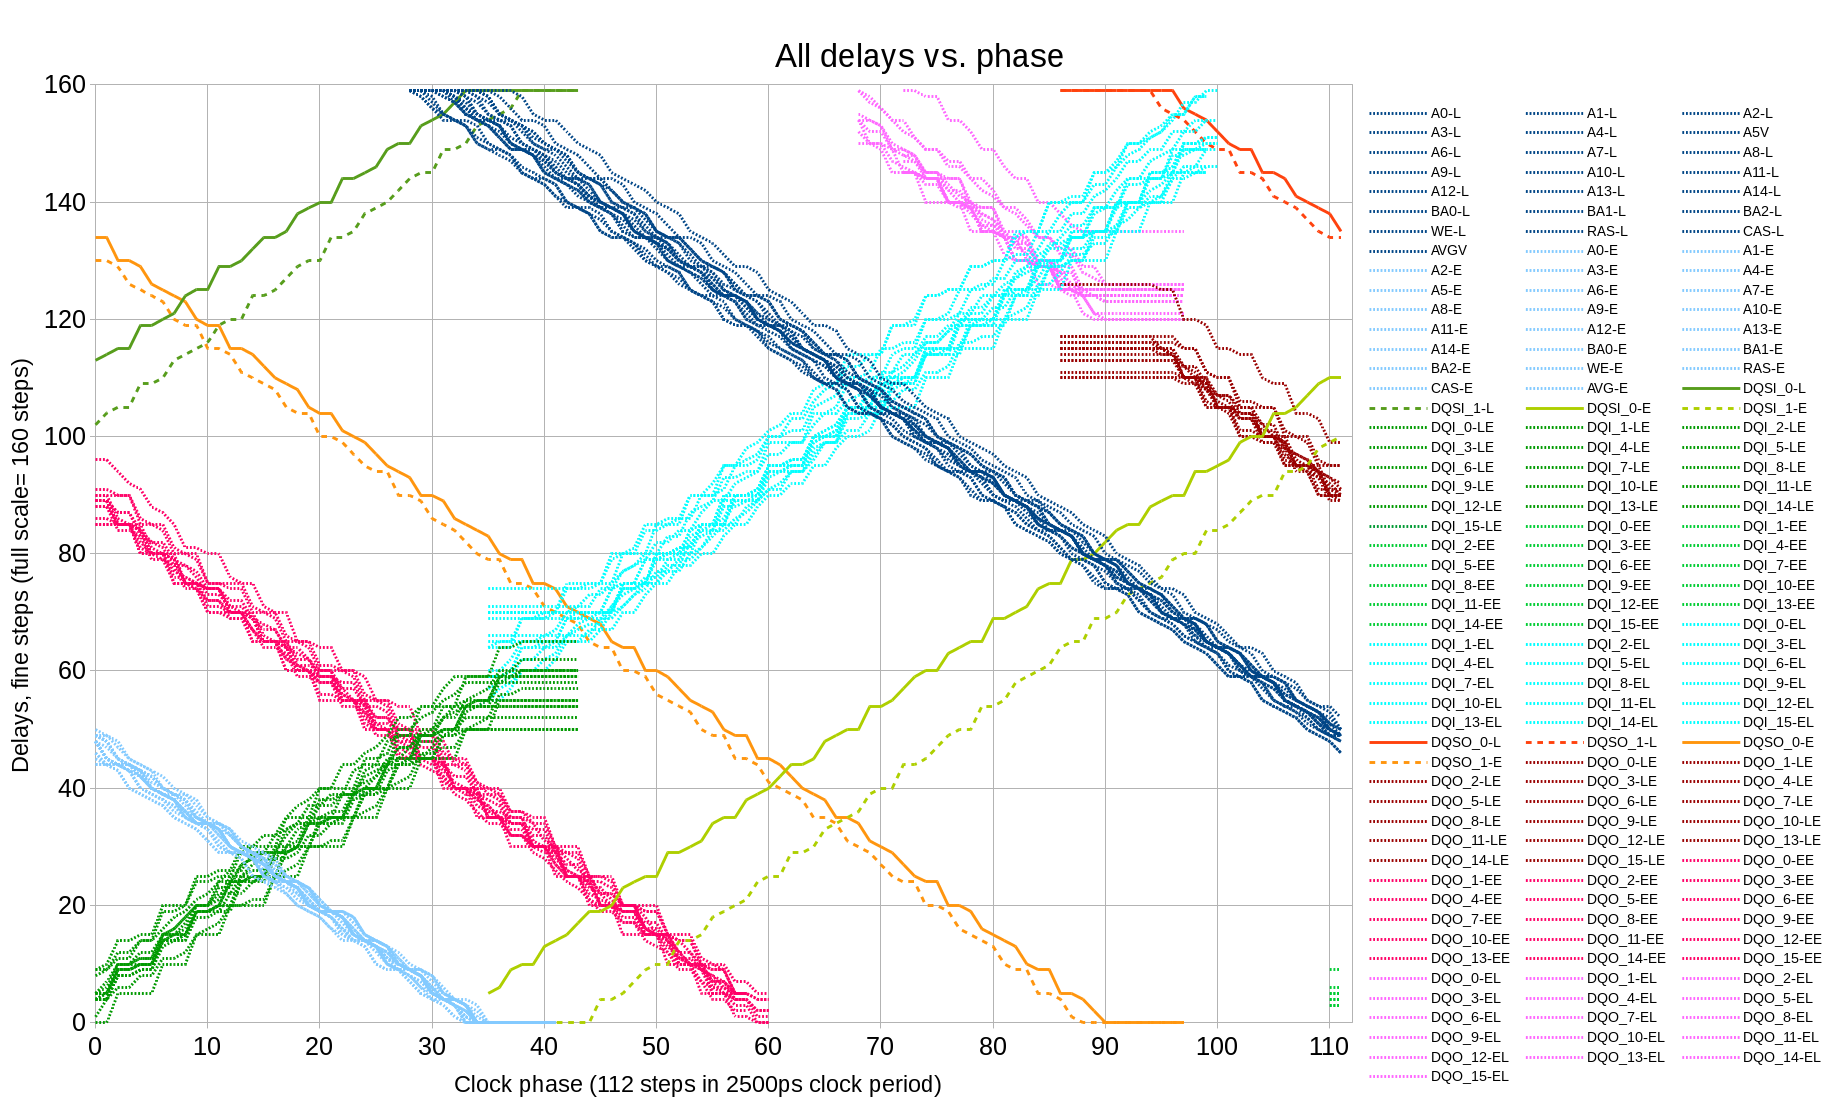 Fig.9 All delays vs. clock phase